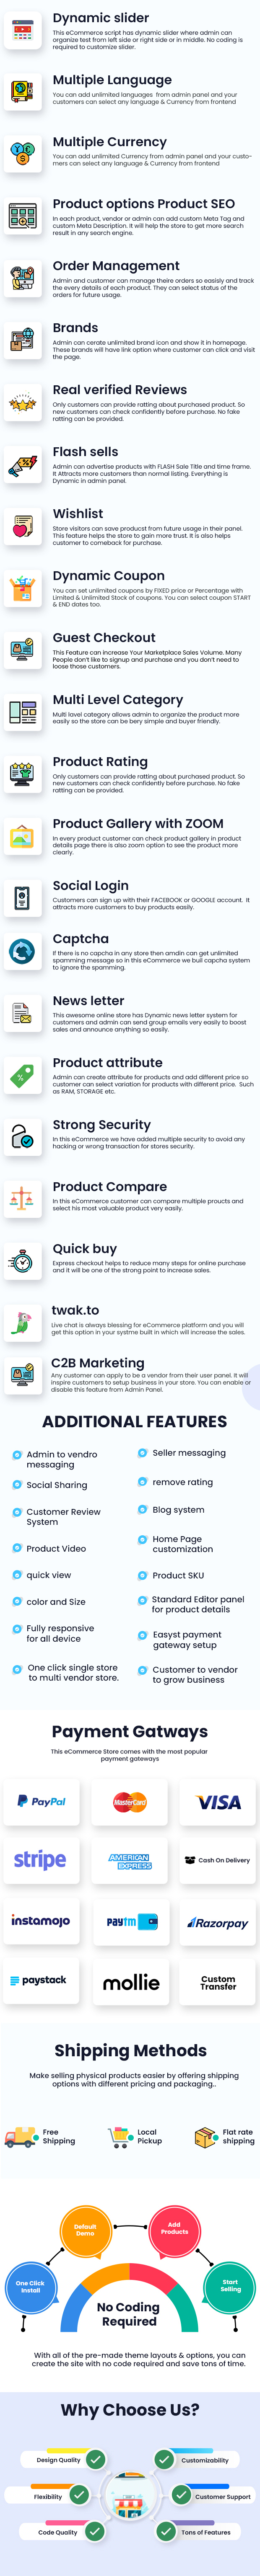 GeniusCart - Single or Multivendor Ecommerce System with Physical and Digital Product Marketplace - 5